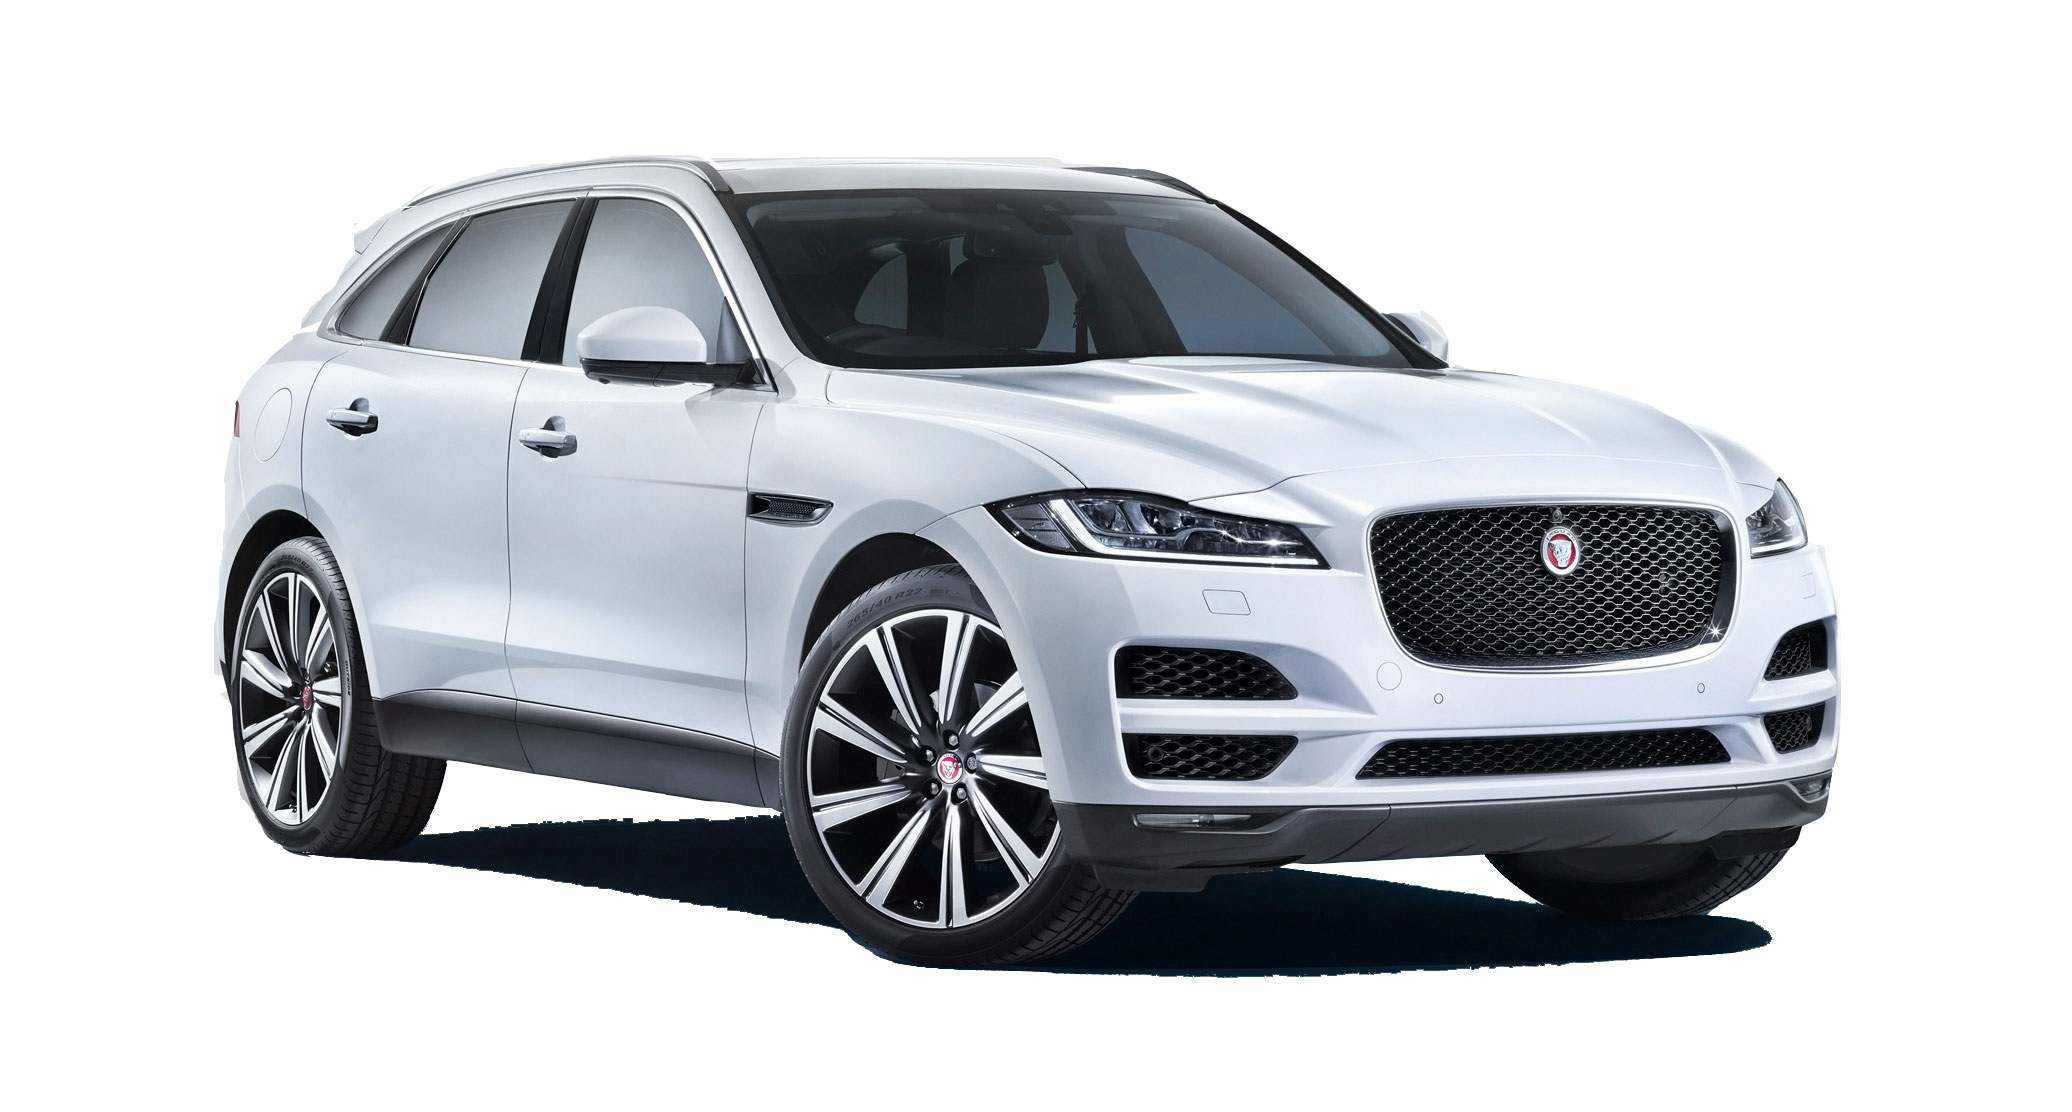 jaguar f pace 120kw pure diesel 06 marce 5. Black Bedroom Furniture Sets. Home Design Ideas